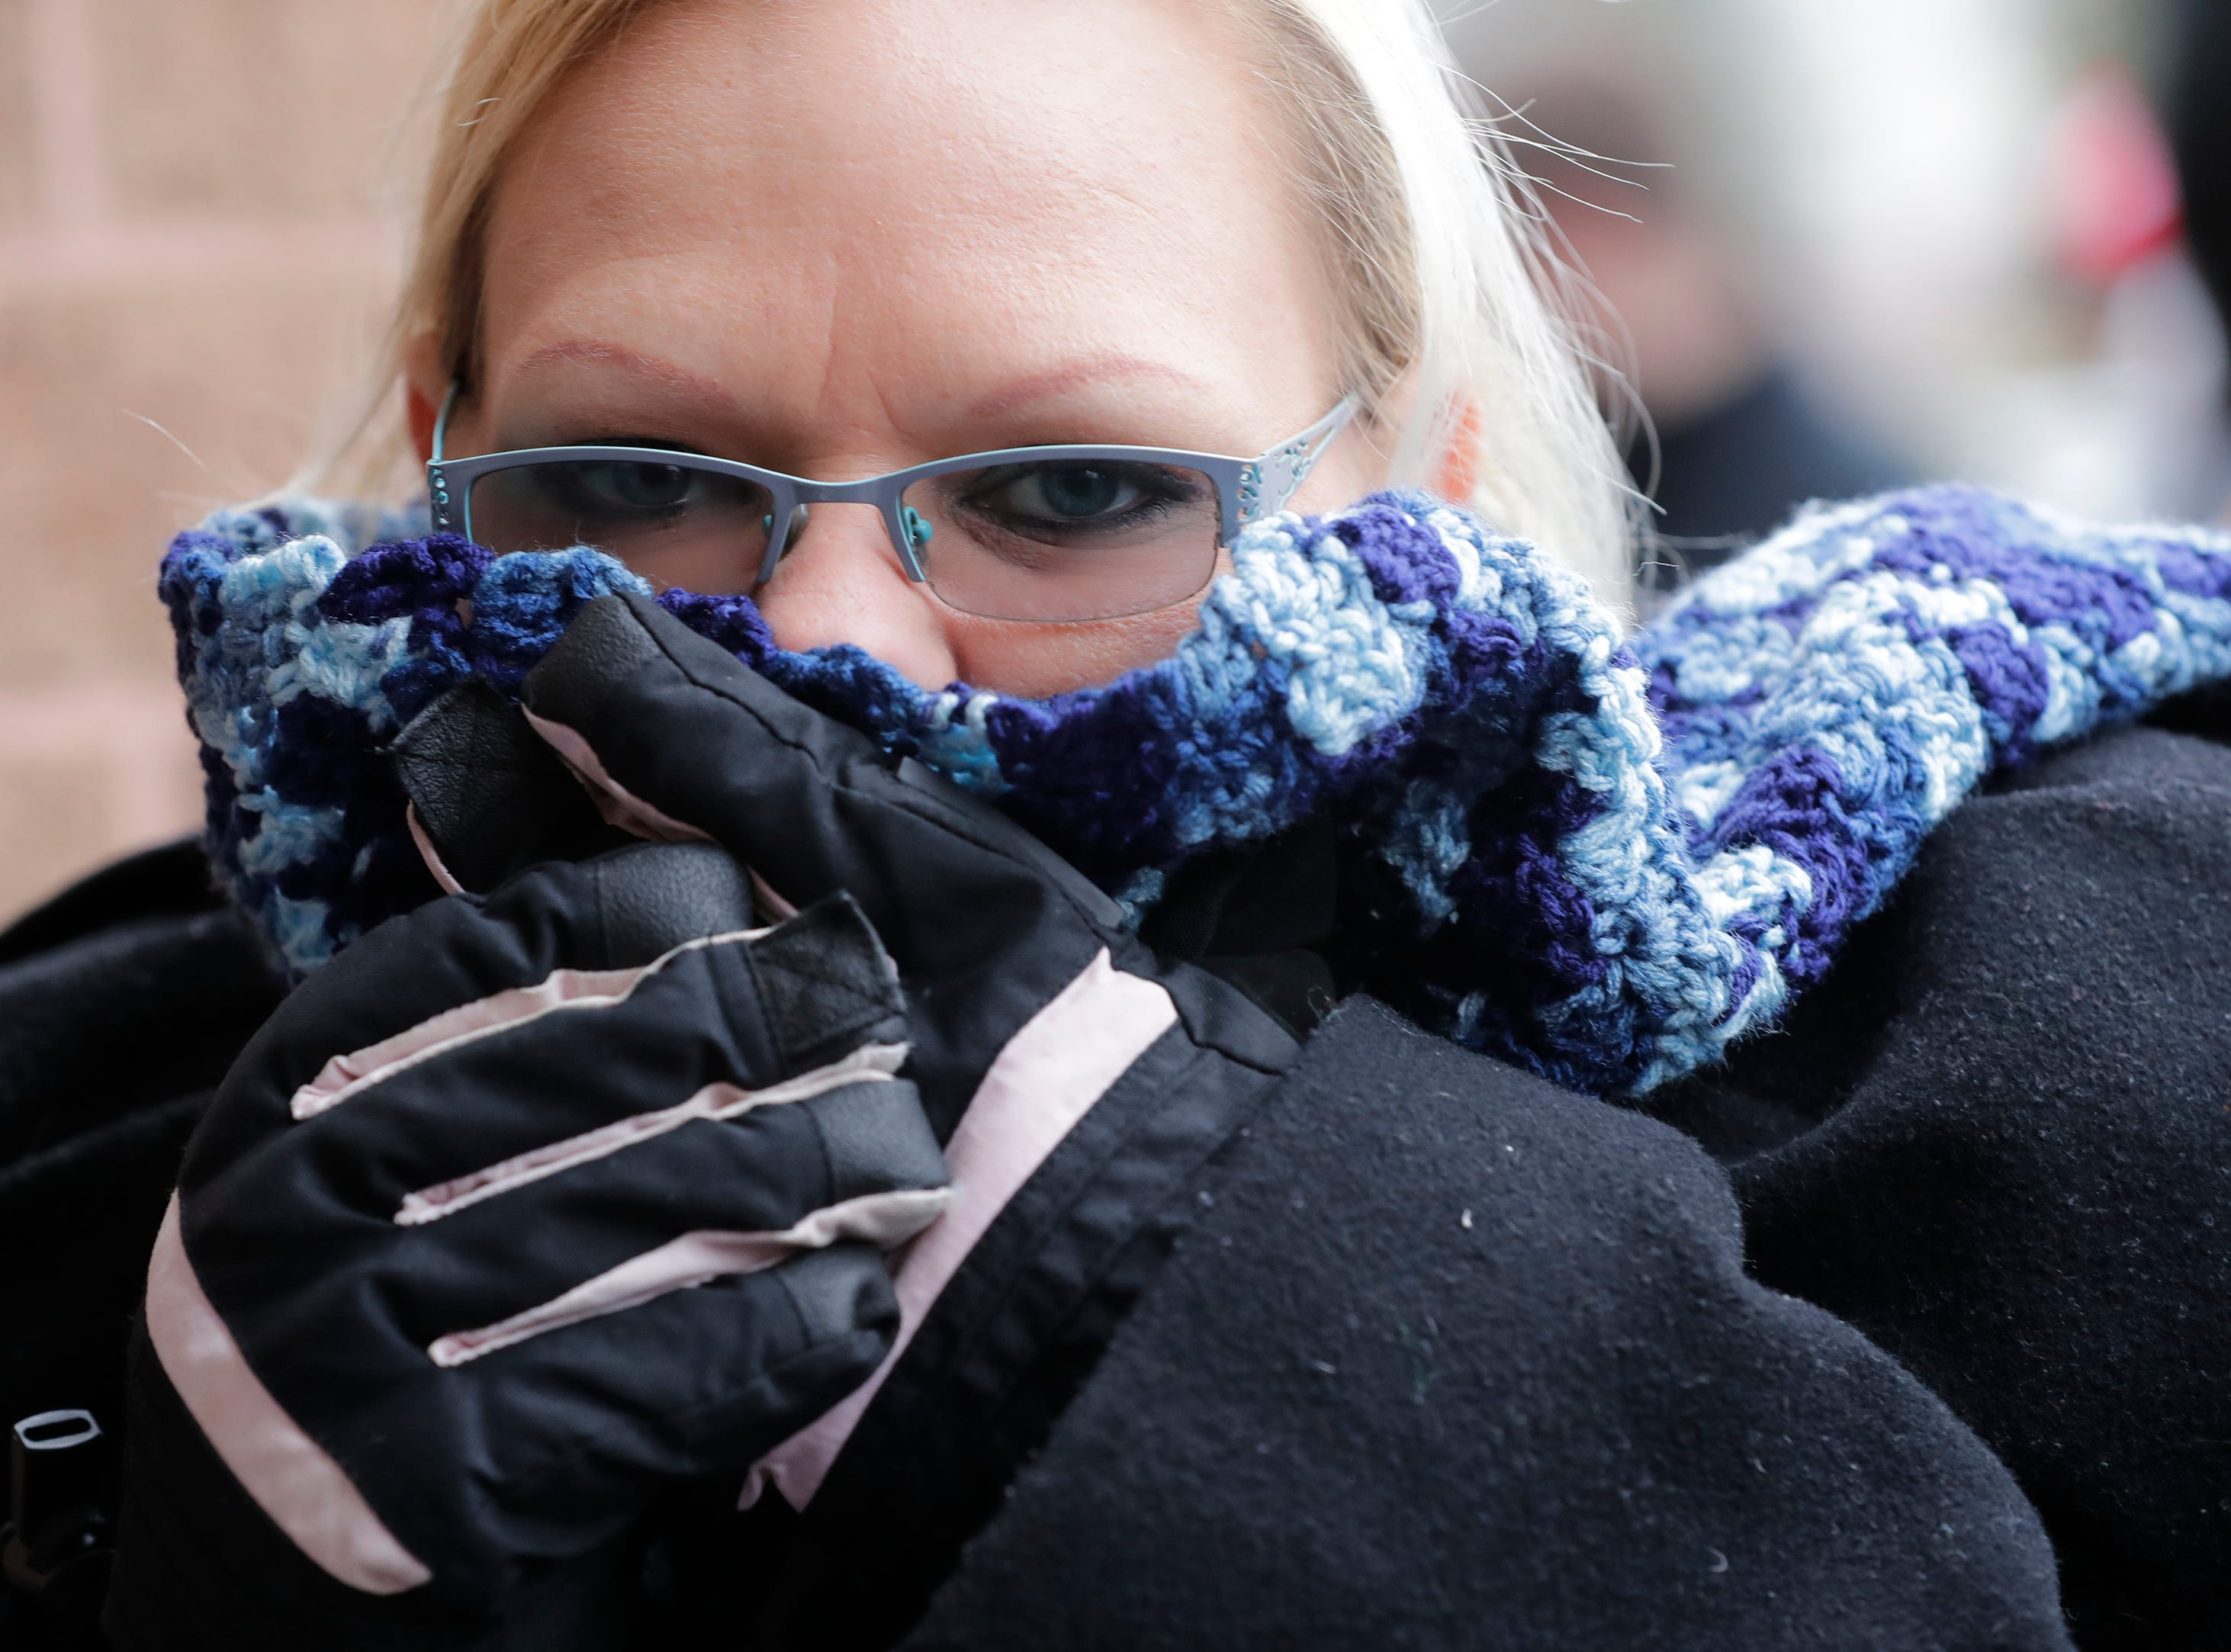 Cindy Kronberg of Kaukauna tries to stay warm while waiting in line outside for Black Friday deals at JCPenney Thursday, November 22, 2018, in Grand Chute, Wis. 